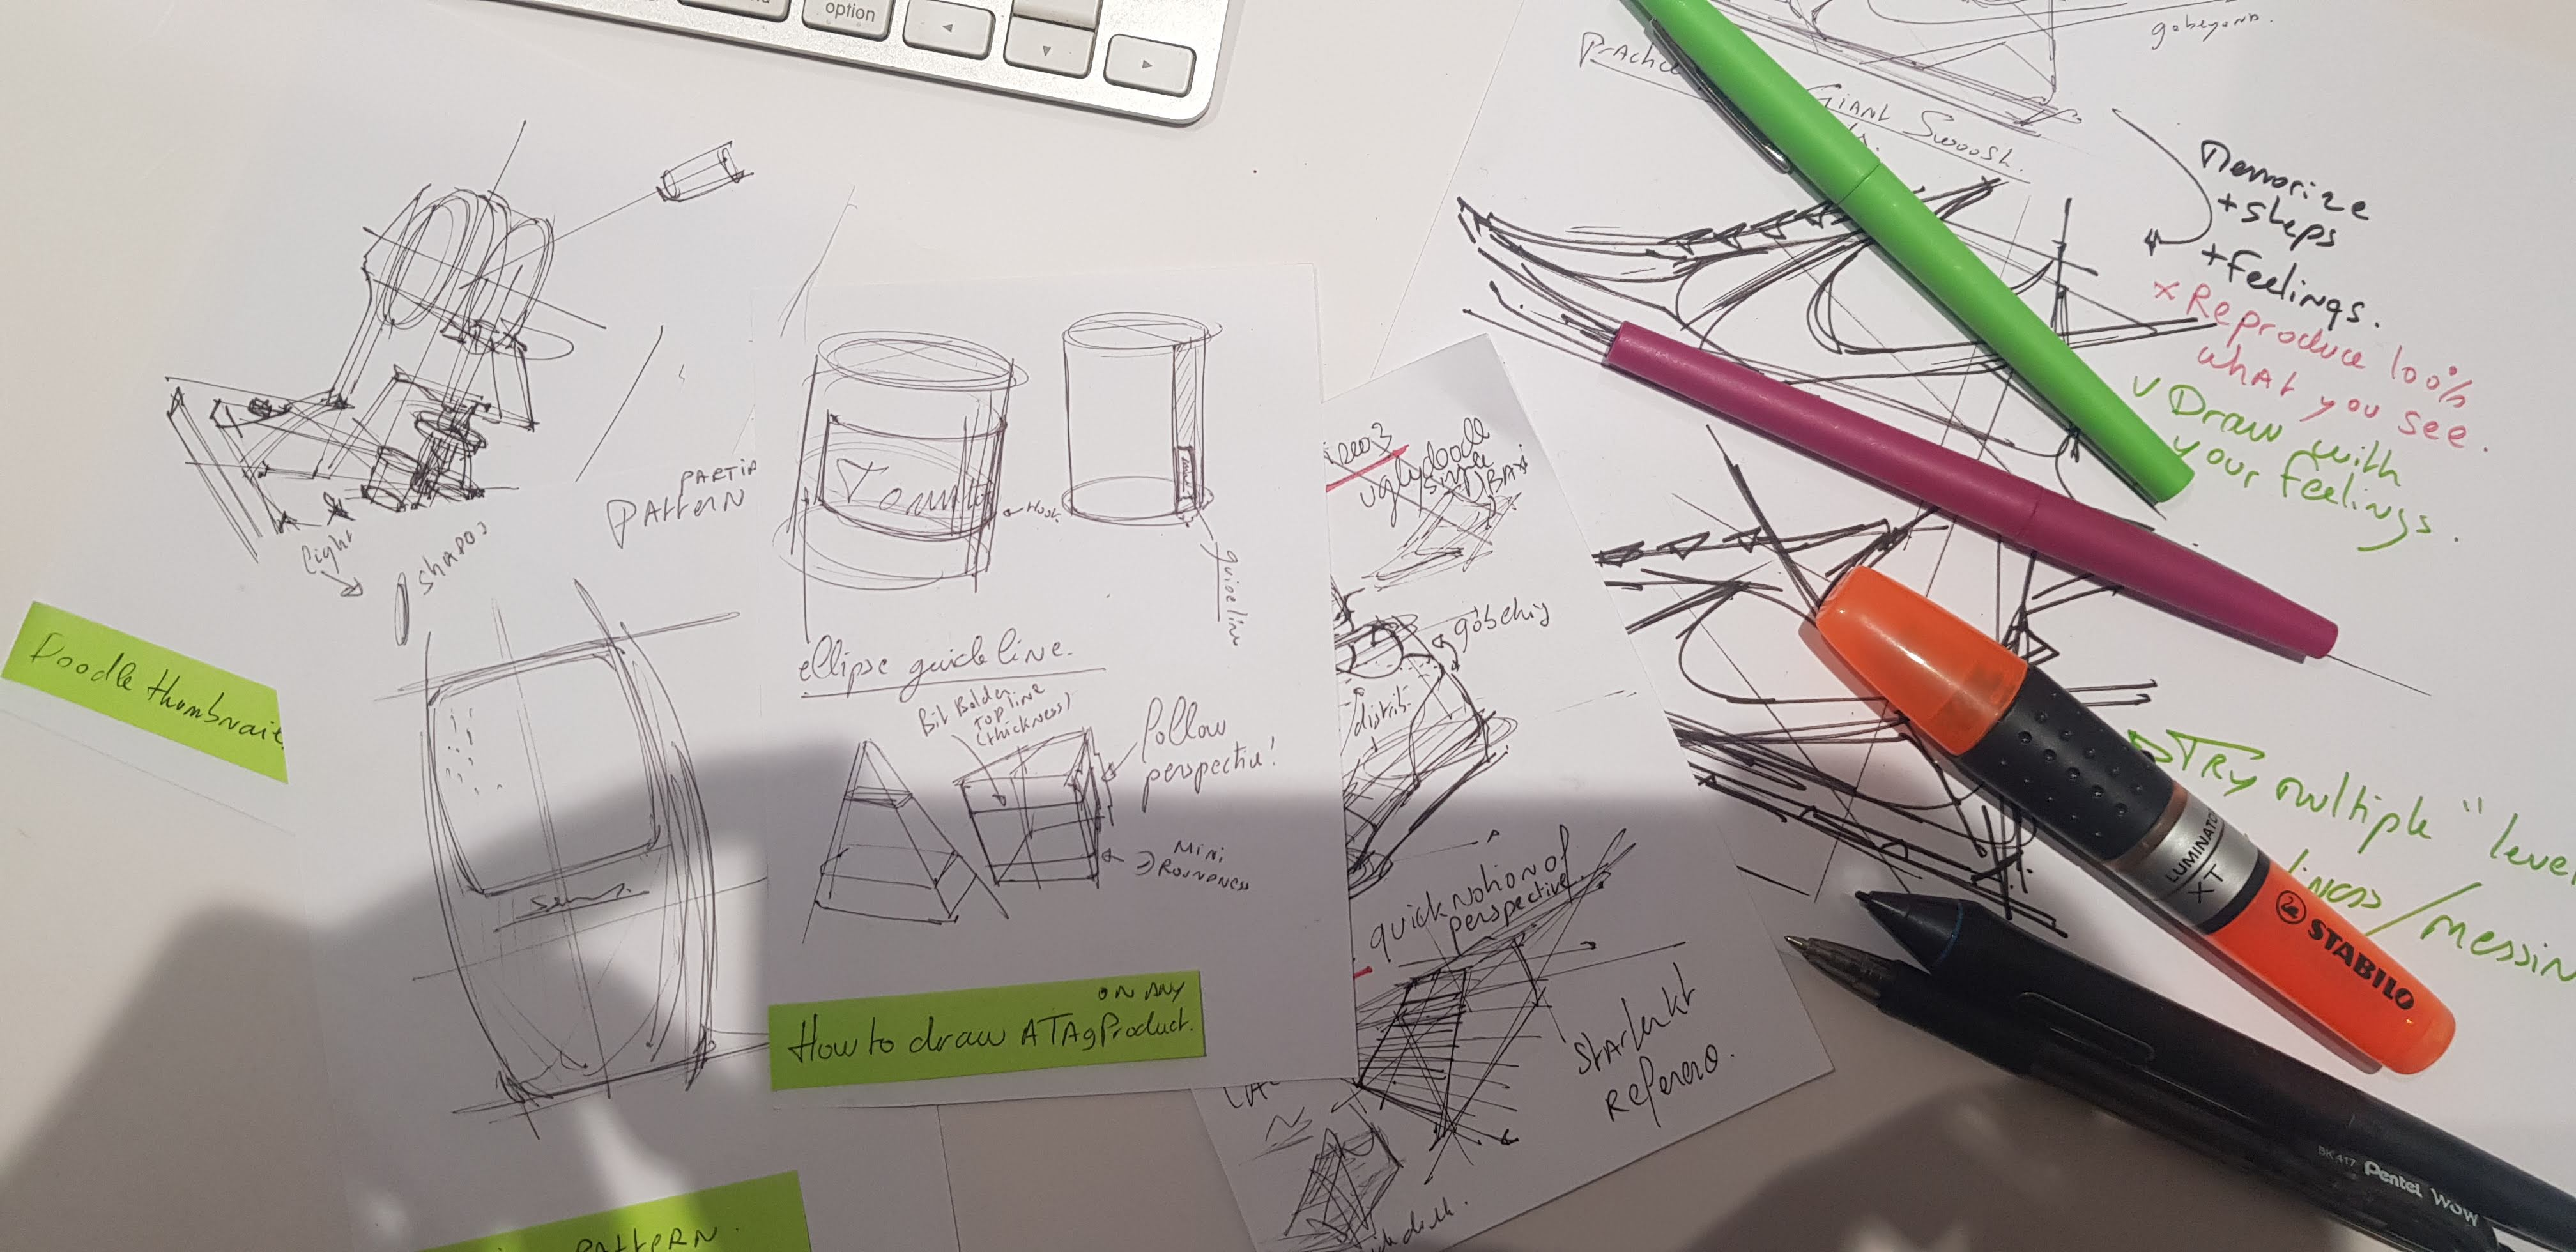 quick note on procduct design sketching the design sketchbook chung chou-tac.jpg